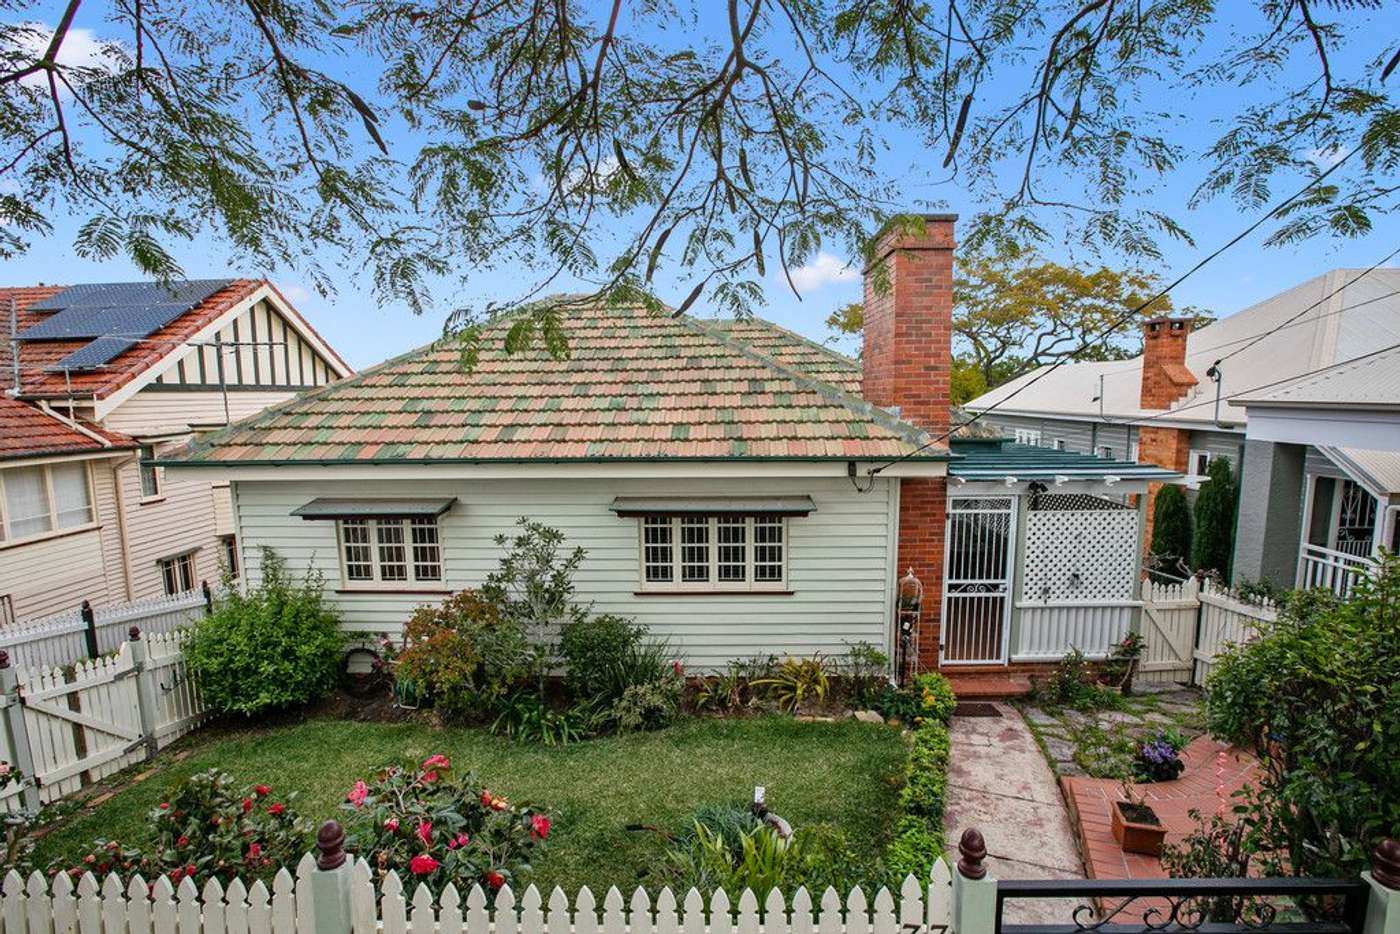 Main view of Homely house listing, 33 Percival Terrace, Holland Park QLD 4121